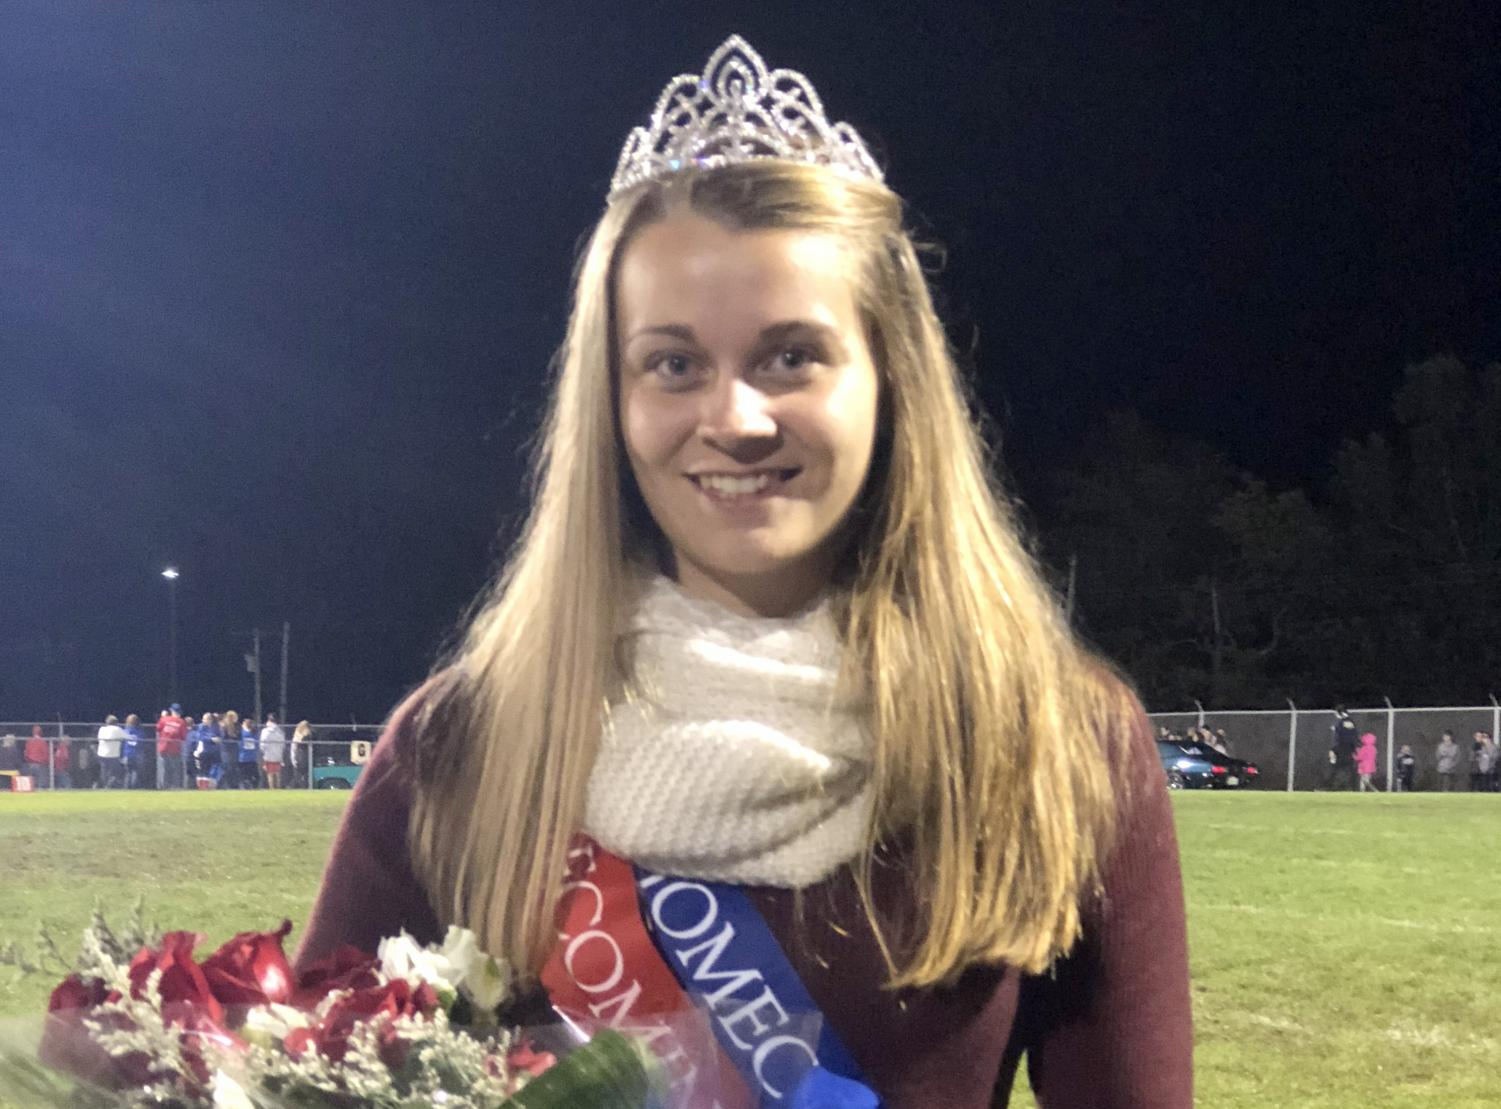 2018 Hoco Queen, Jennifer Adams